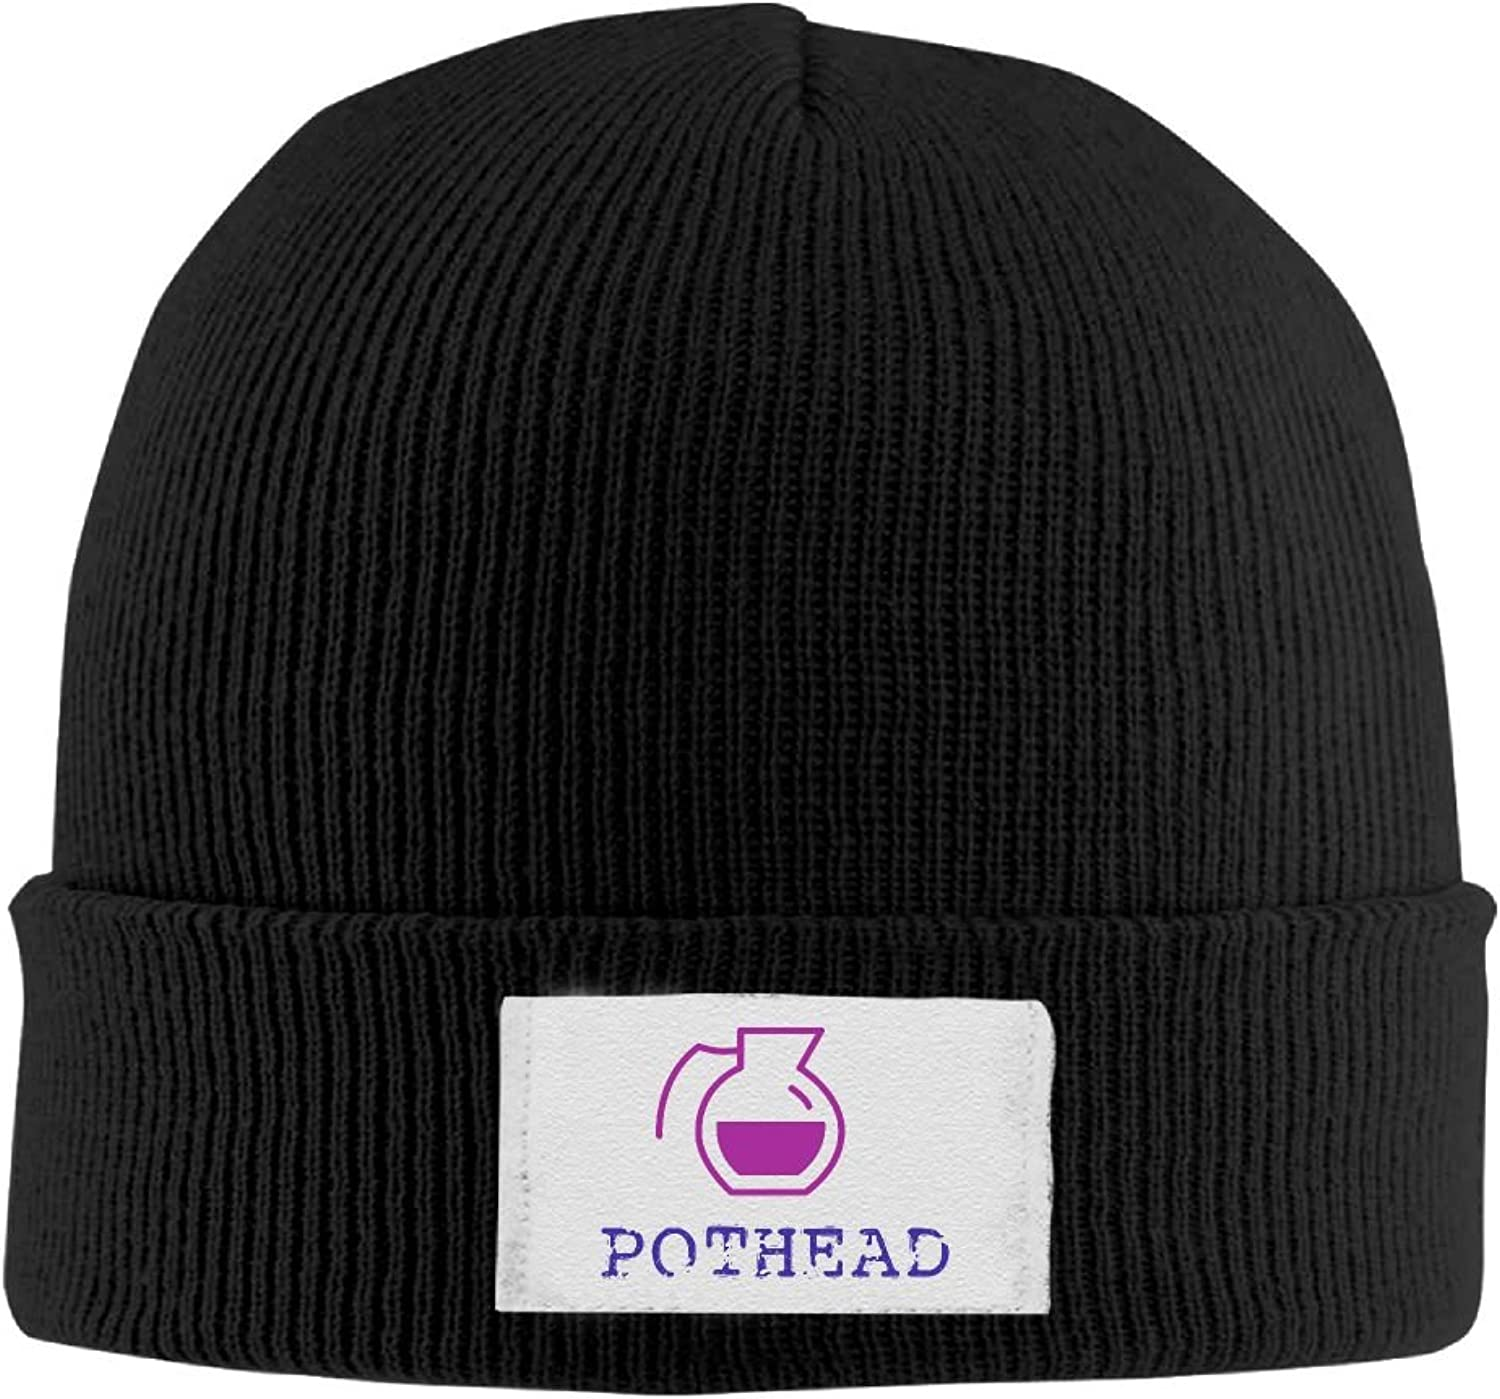 Pothead Beanie Hat Cool Stocking Black Style